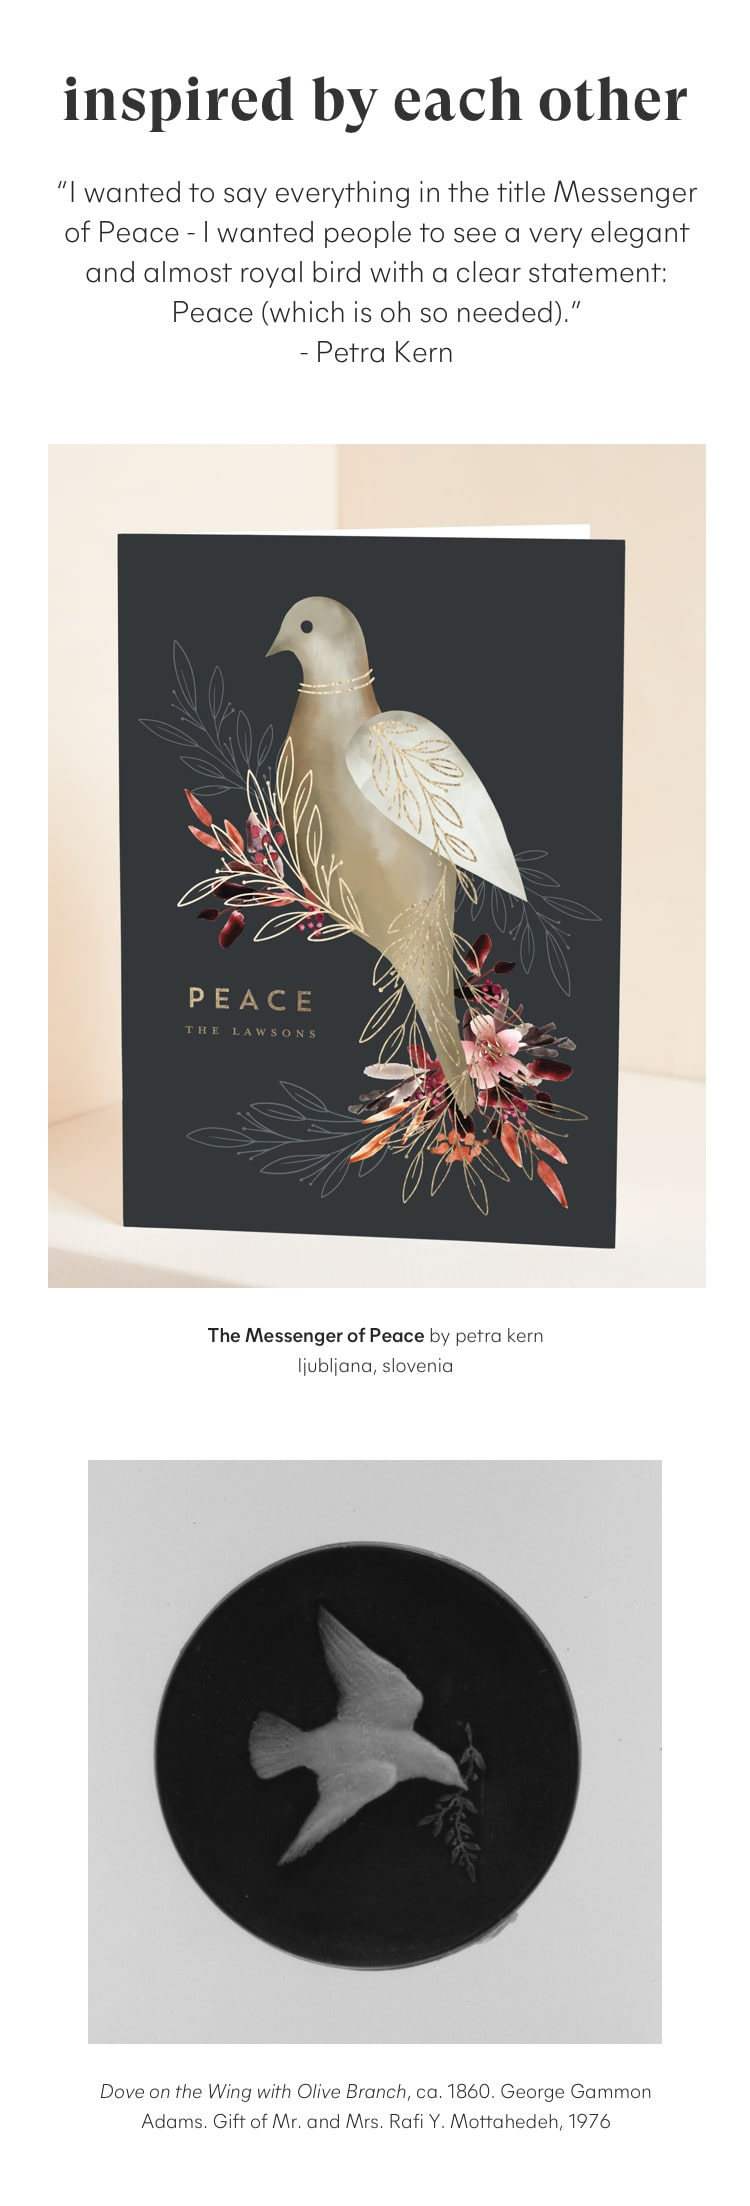 The Met - Slide 8: TheMessageOfPeace